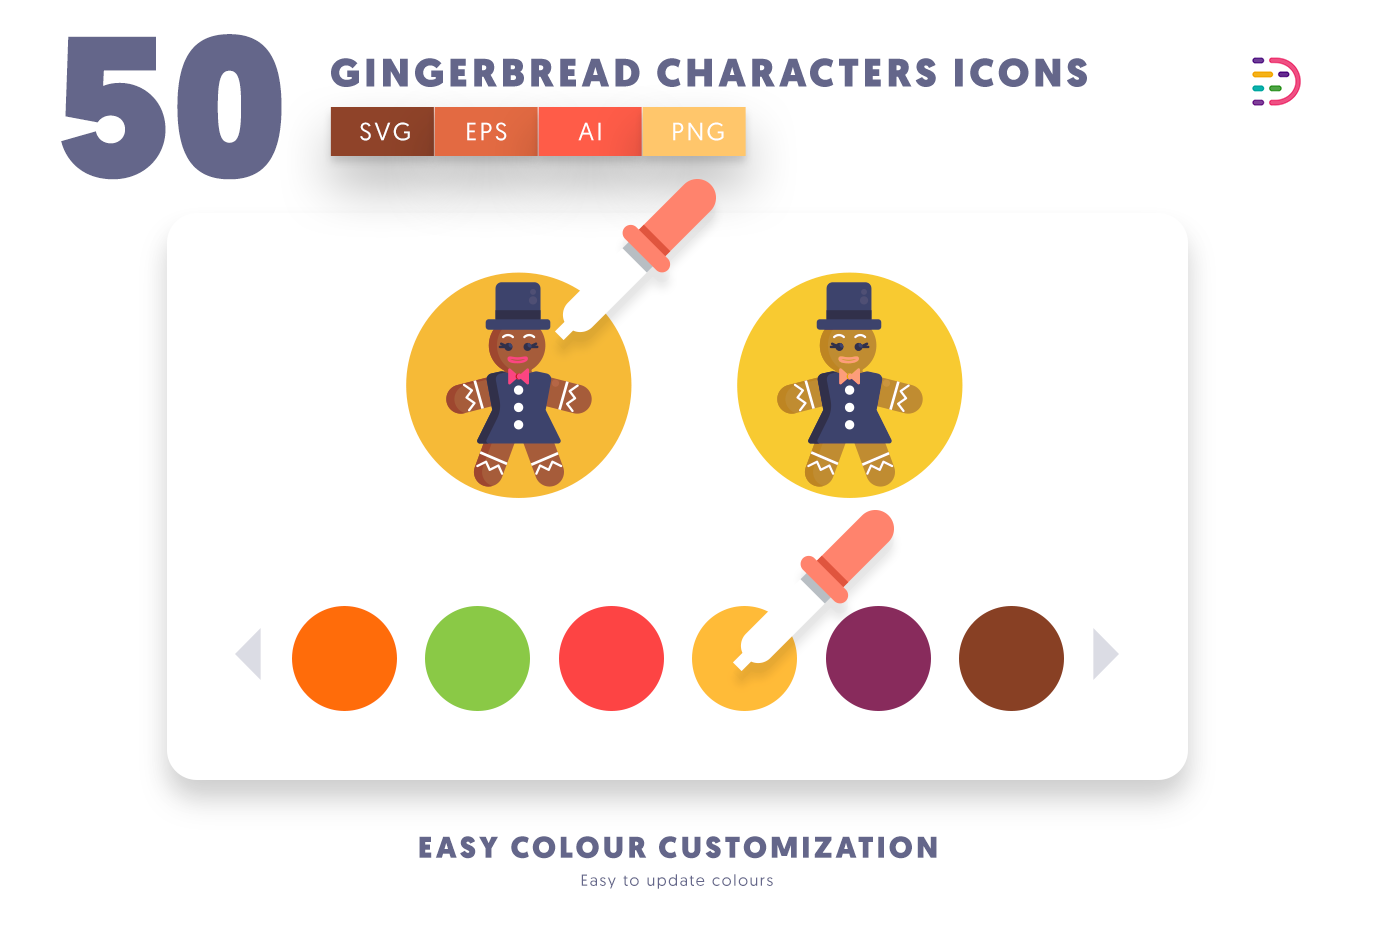 Customizable and vector 50 Gingerbread Characters Icons